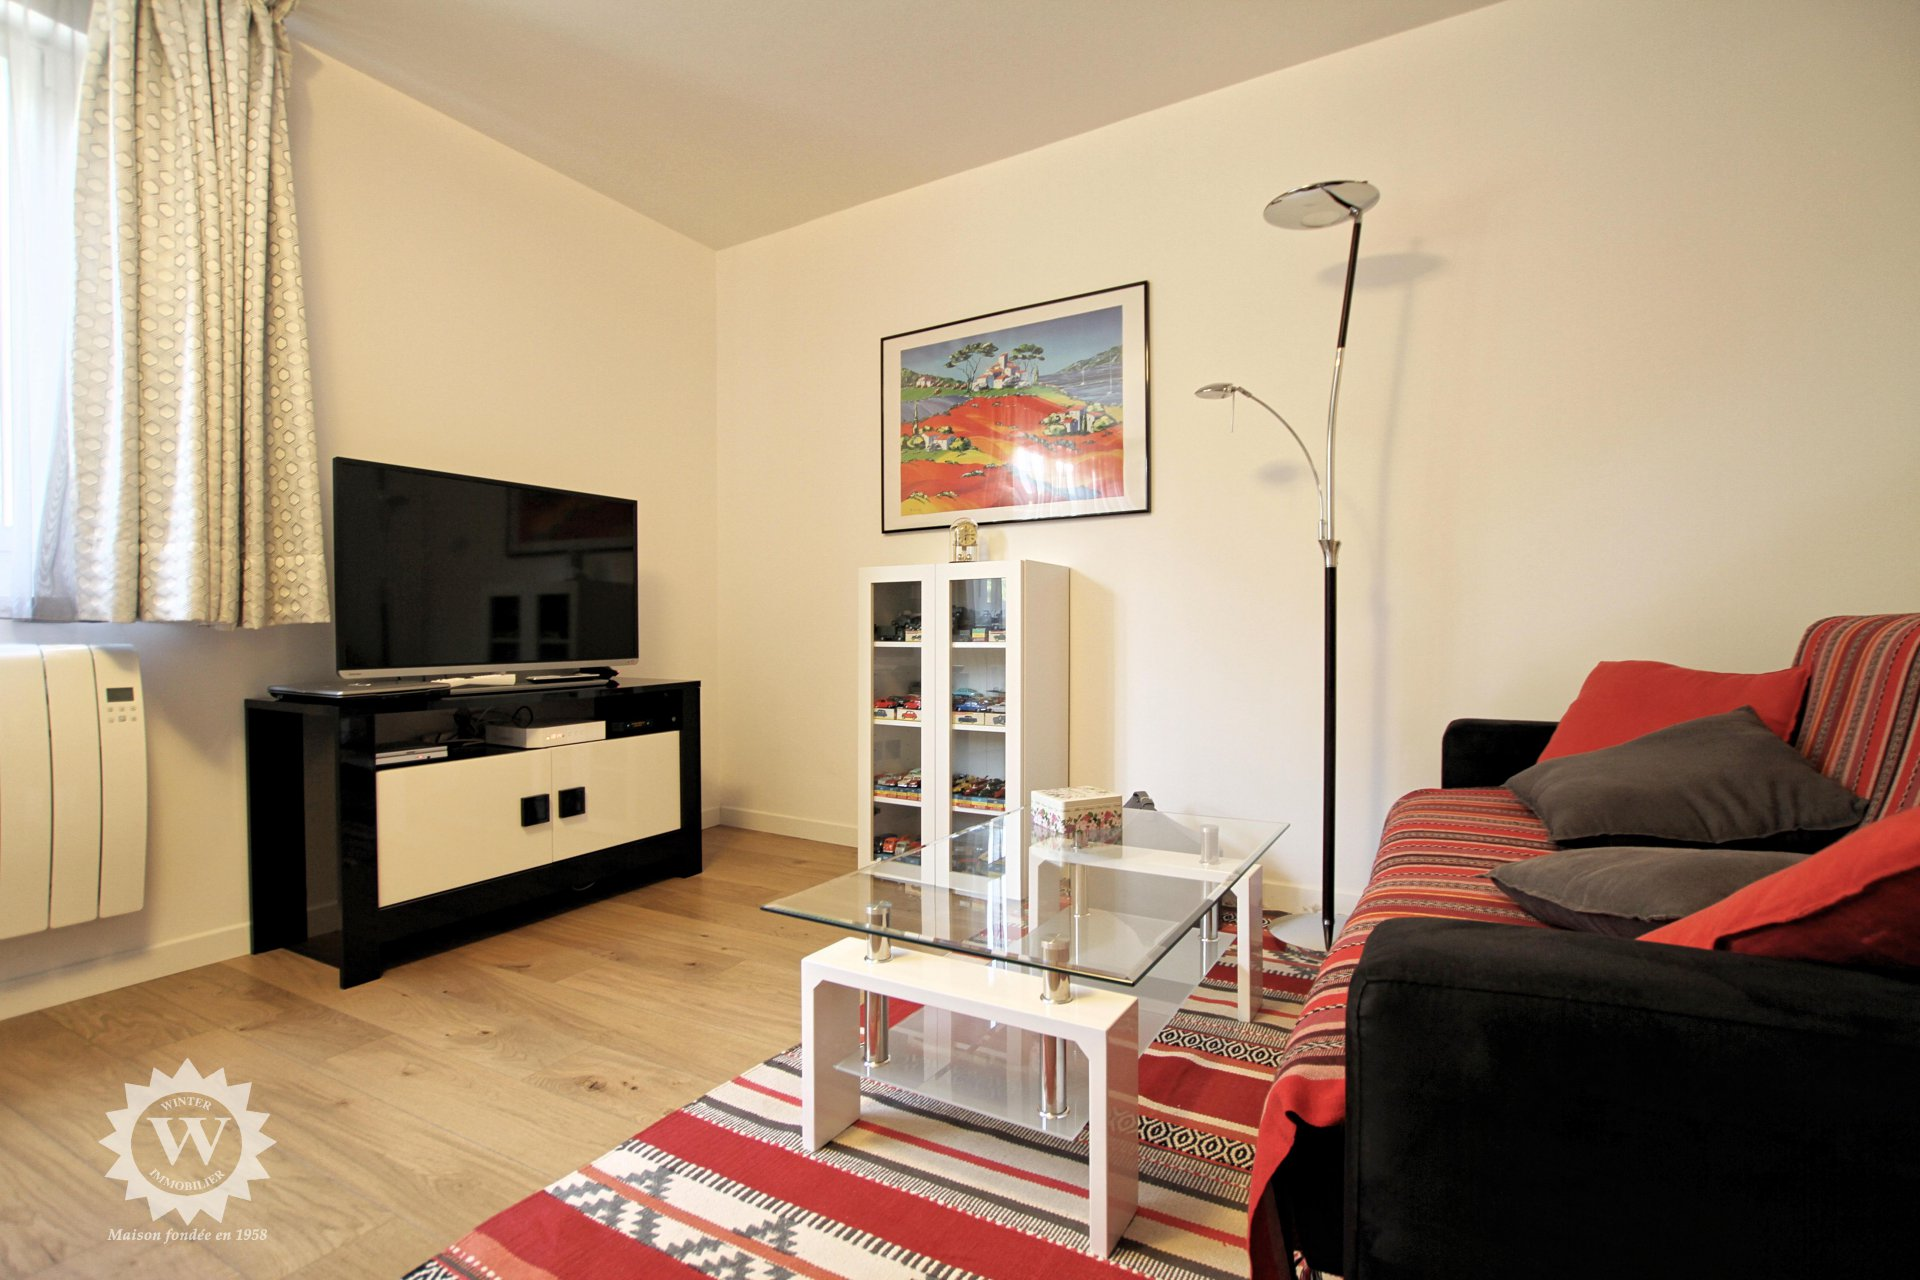 Nice Flower square (Orangers street) - One bedroom flat on garden